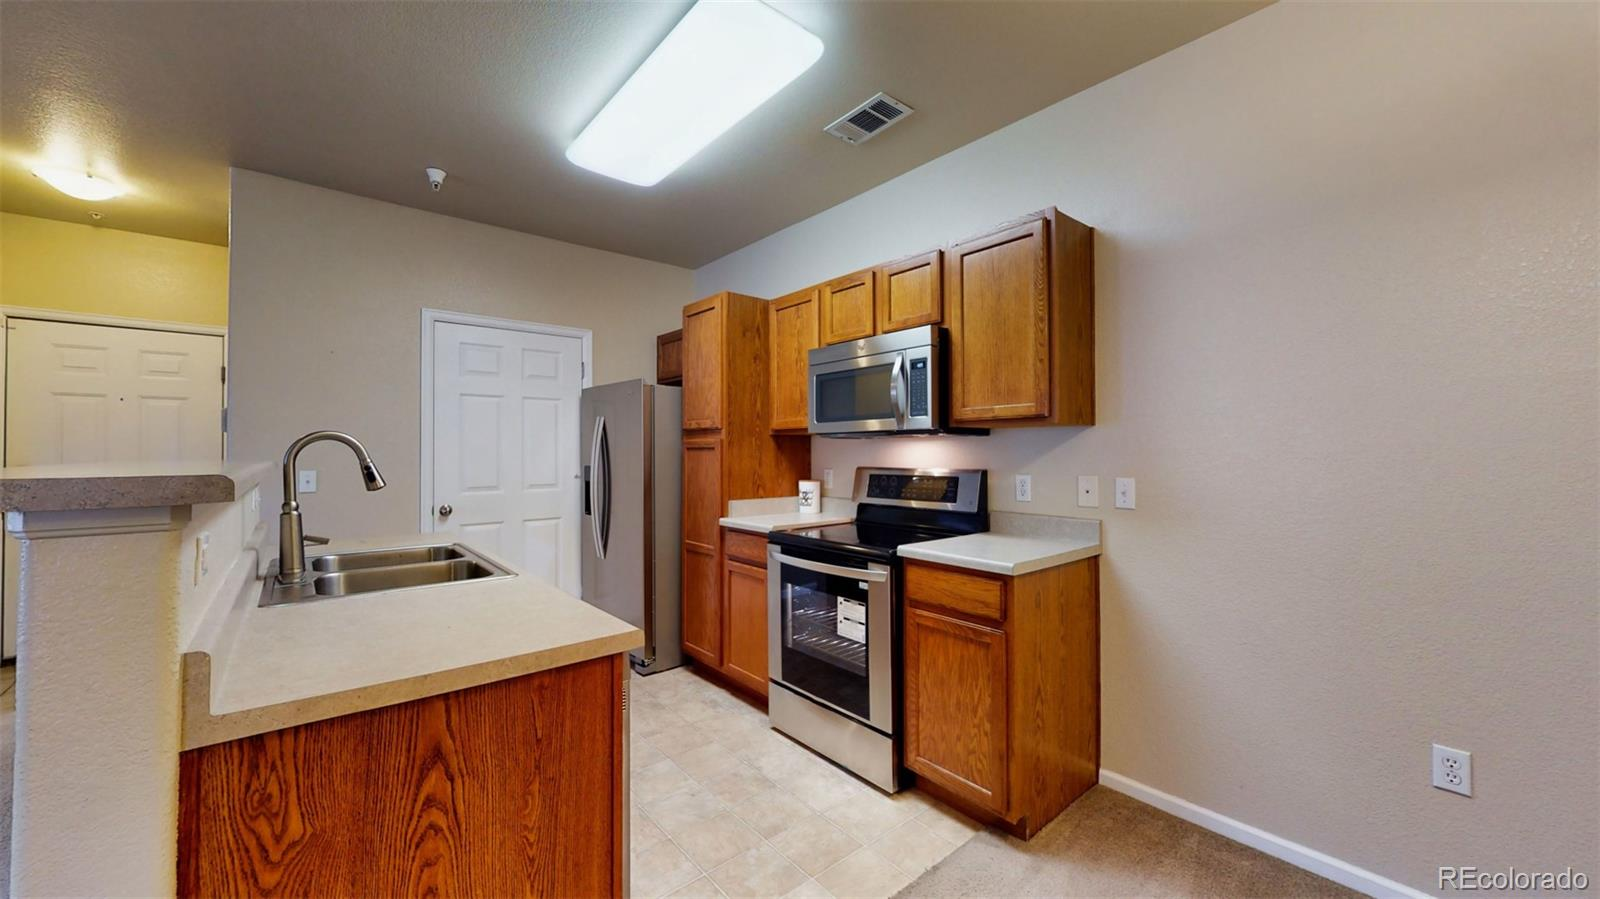 MLS# 3562922 - 4 - 8123 W 51st Place #202, Arvada, CO 80002